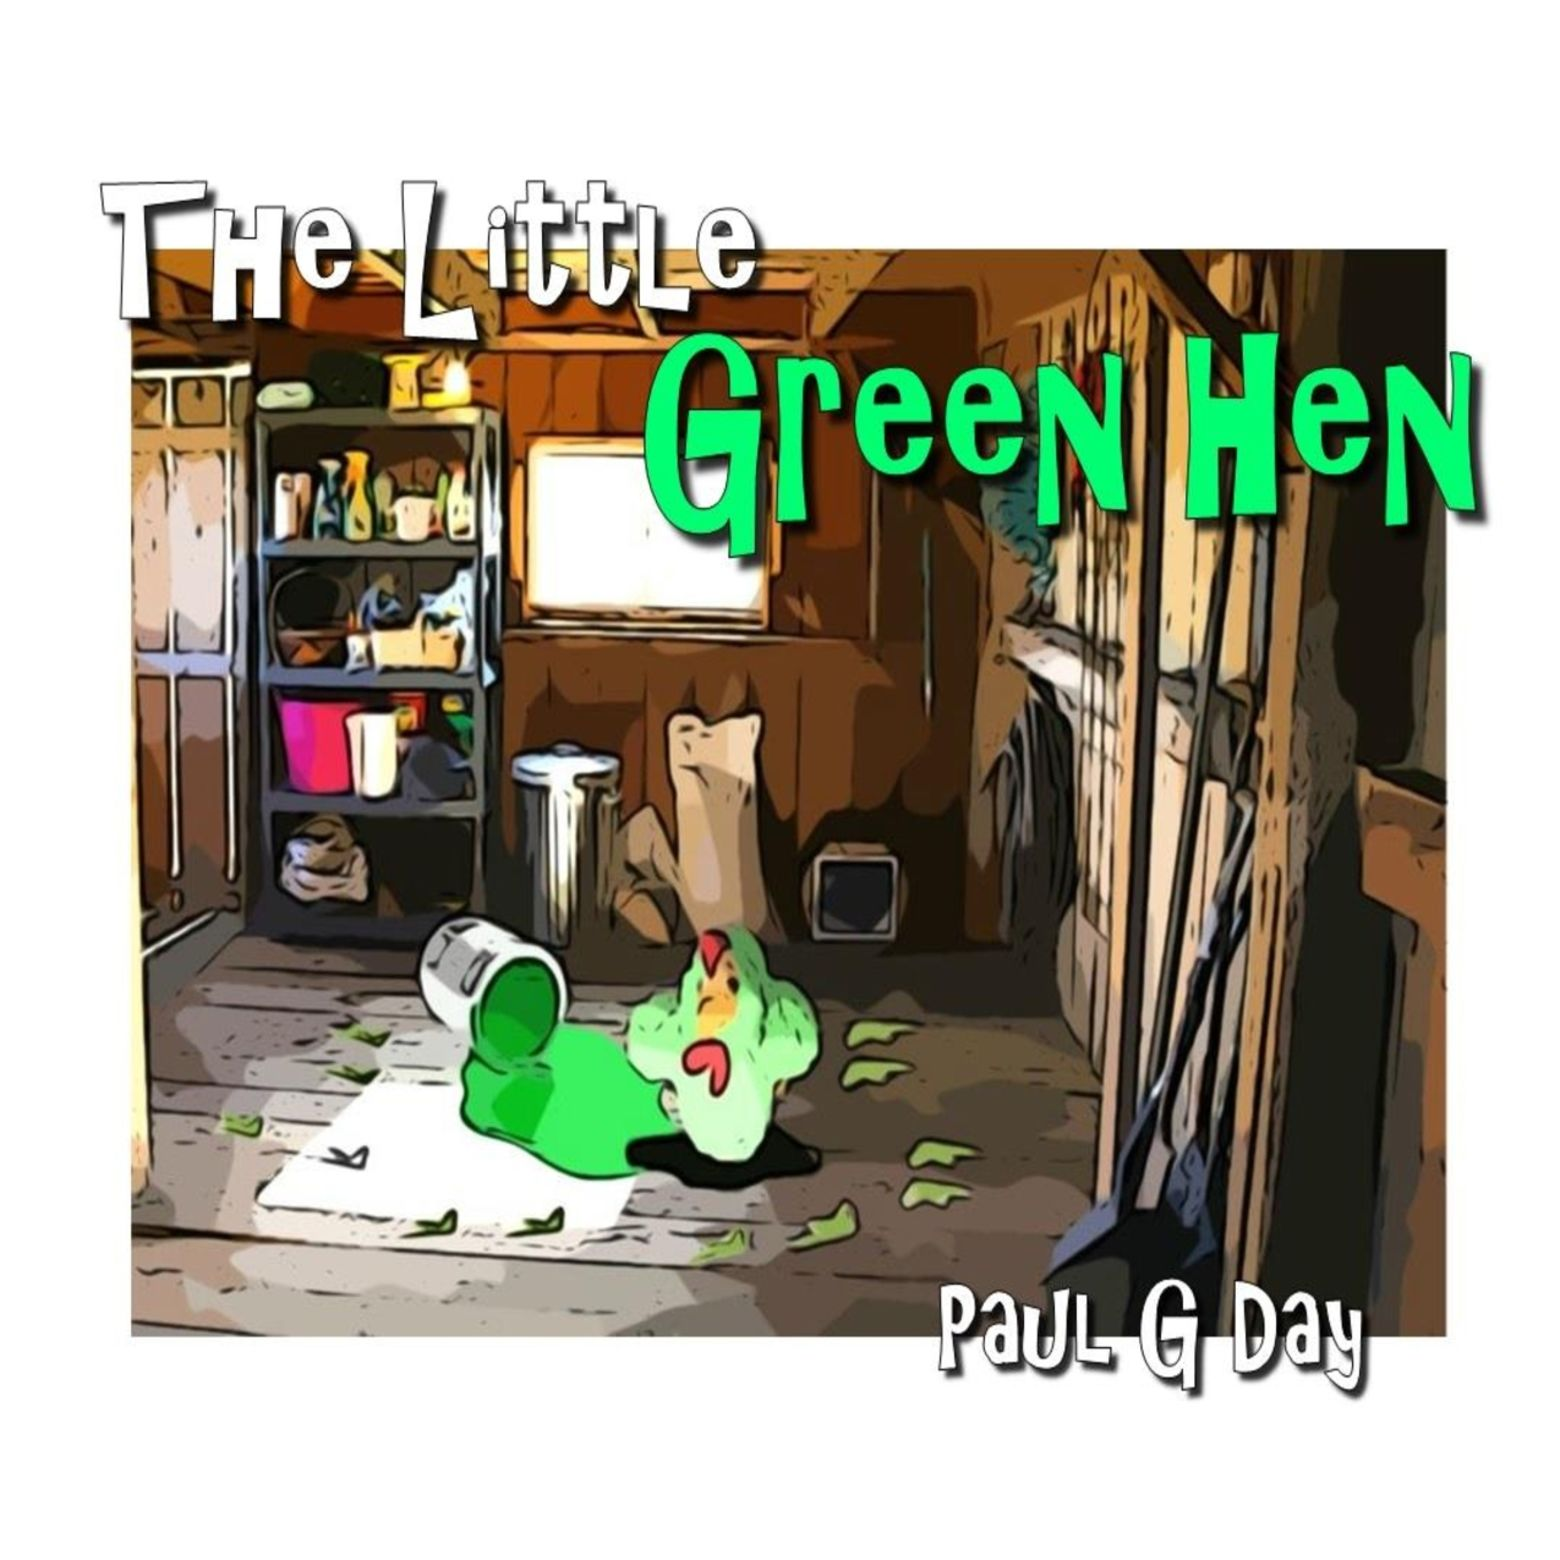 Reading The Little Green Hen by Paul G Day | MagicBlox Online Kid's Book